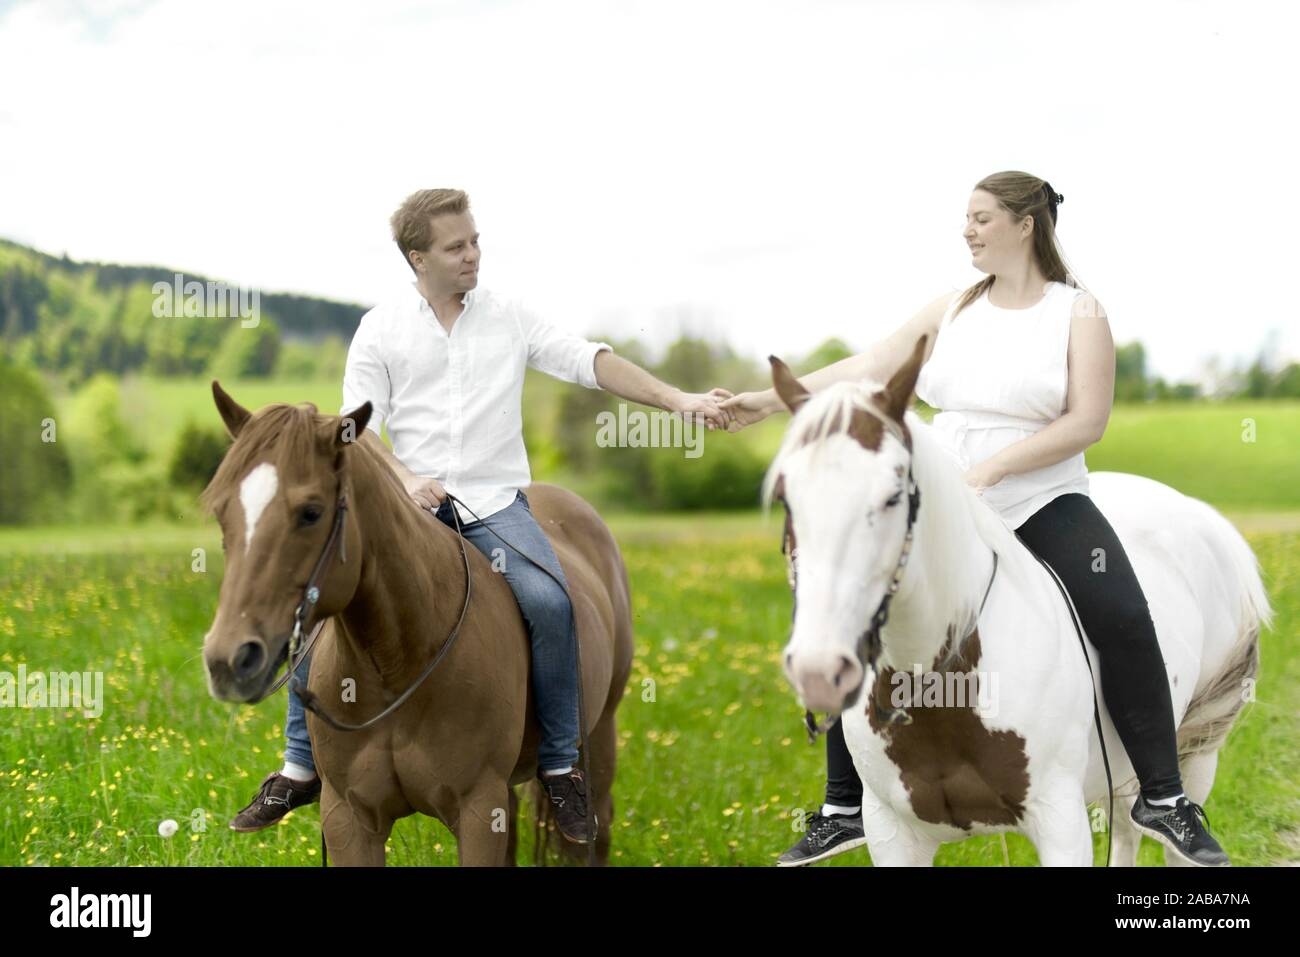 Page 2 Couple Riding Horses High Resolution Stock Photography And Images Alamy